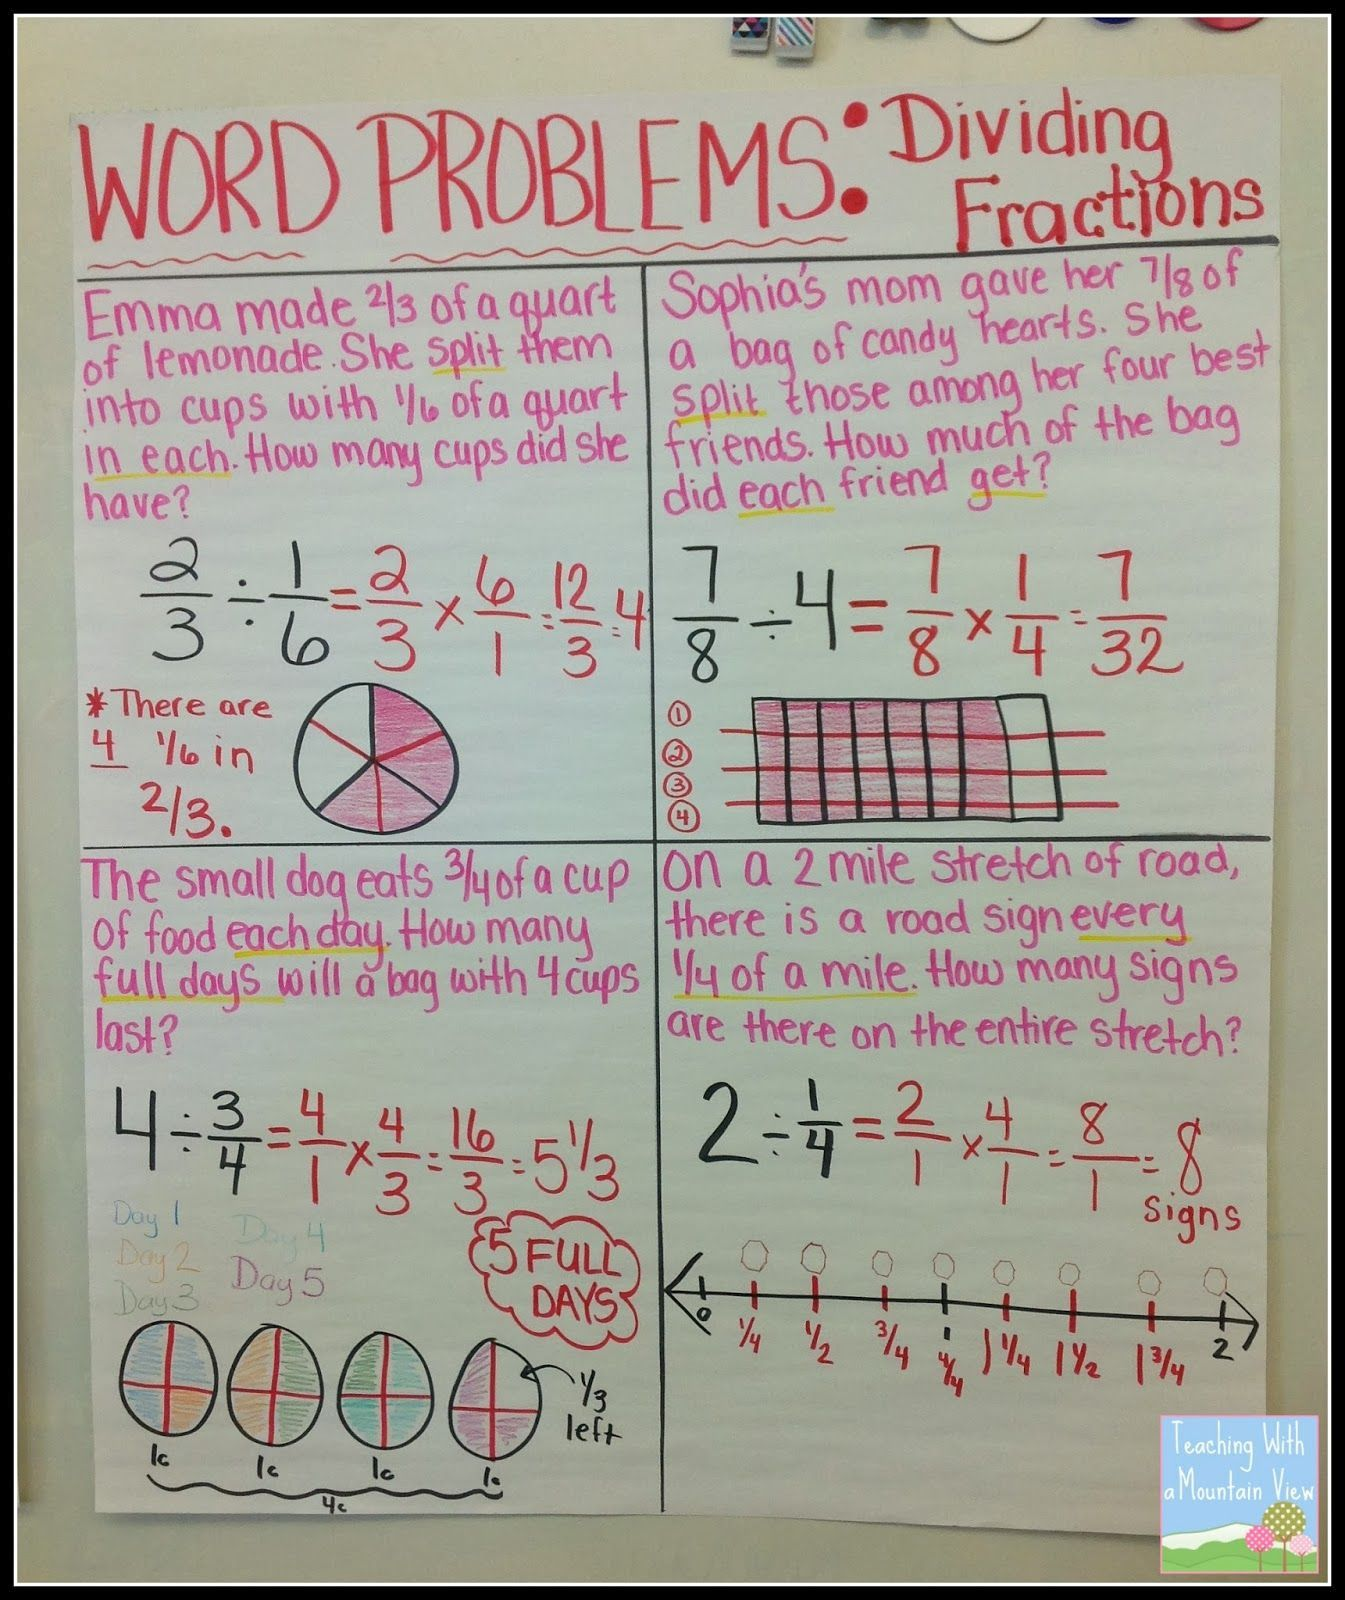 7 Multiplying Fractions Word Problems Pdf In 2020 Fraction Word Problems Math Fractions Dividing Fractions Word Problems